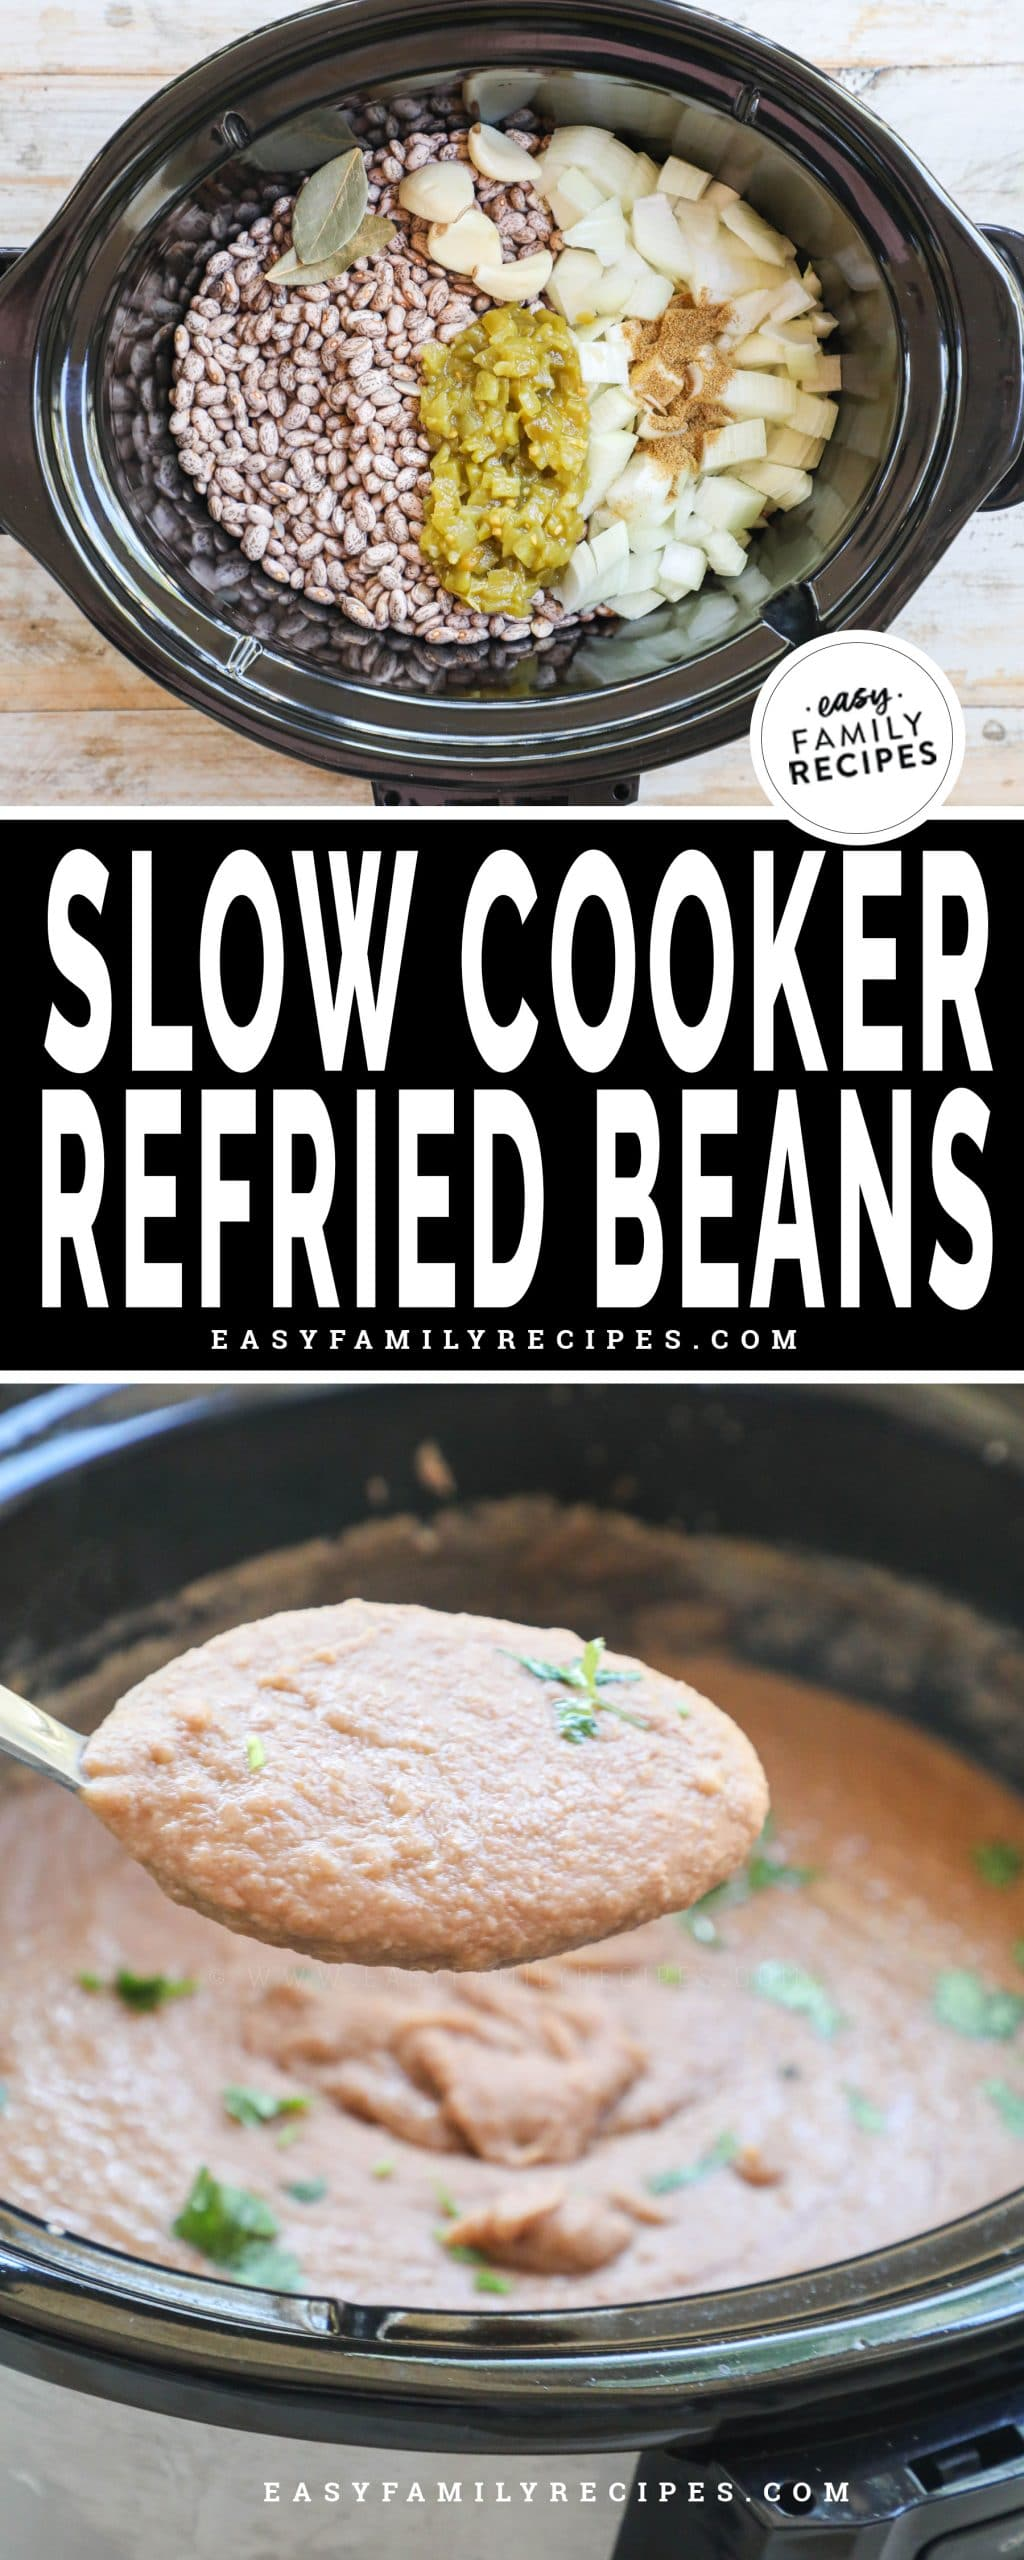 Slow cooker refried beans shown in crock pot before cooking and bottom in crockpot after cooking